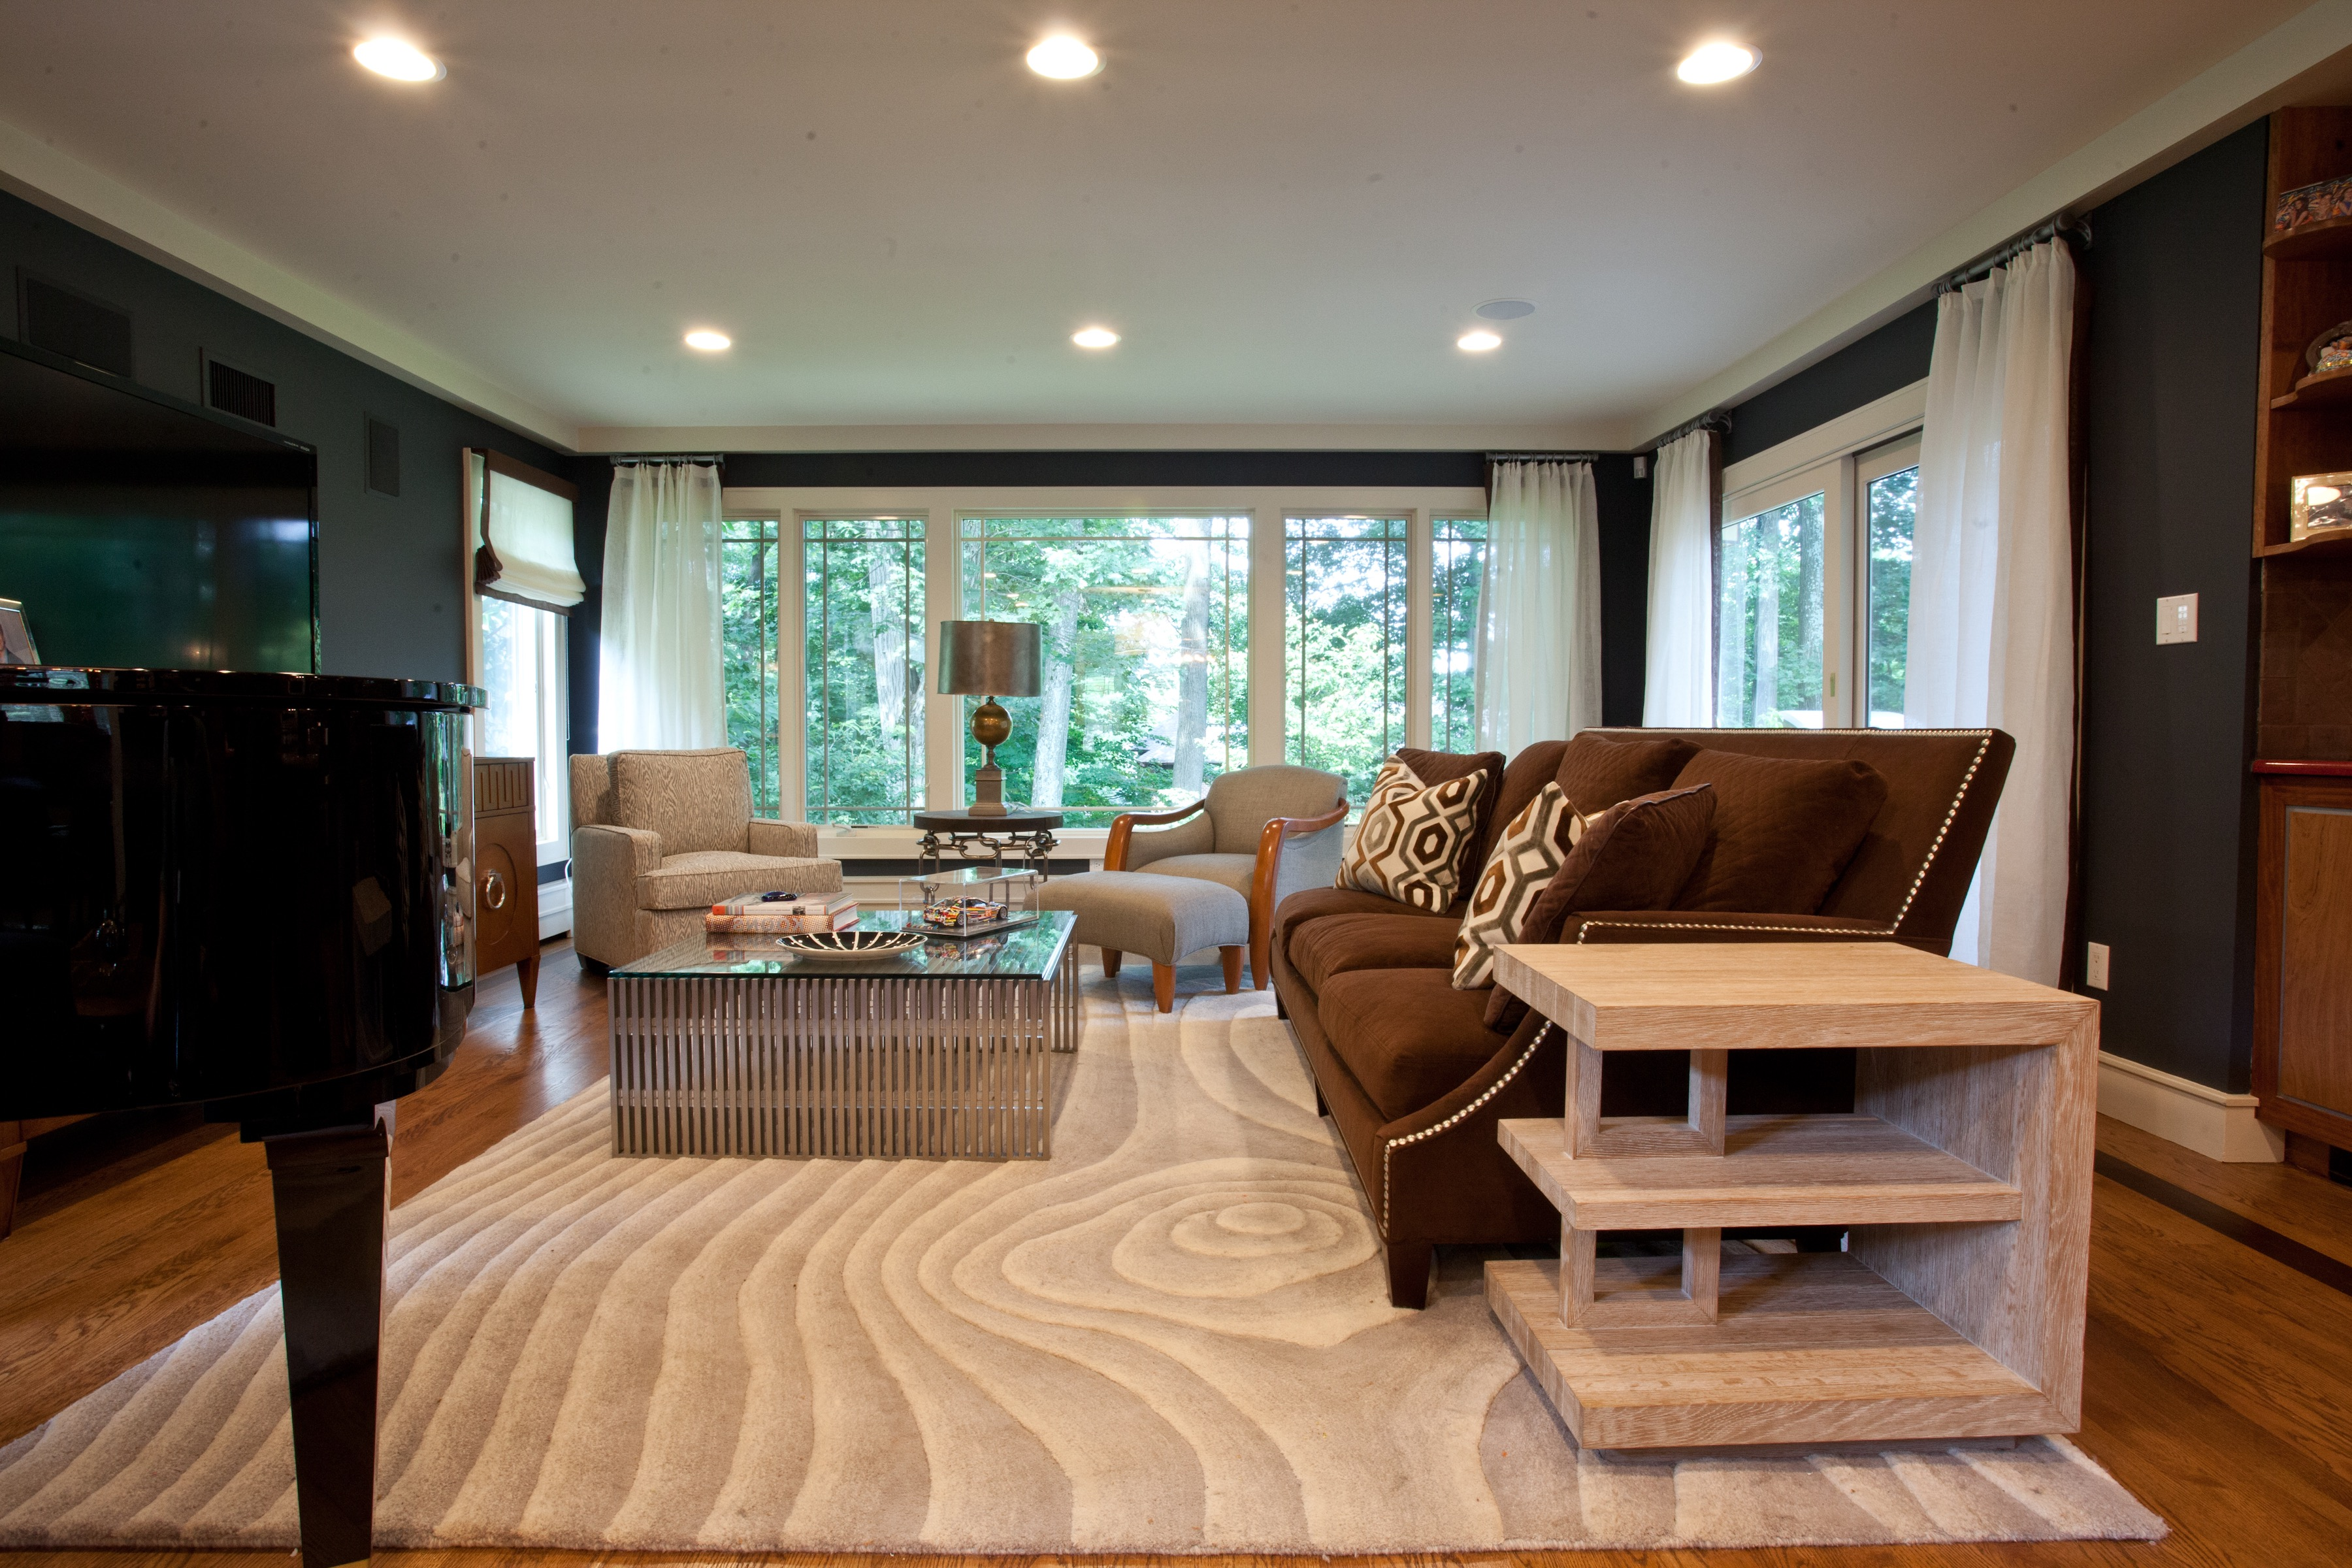 Modern Art Decor Inspired Living Room With Living Room With Swirl Pattern Area Rug (View 20 of 20)